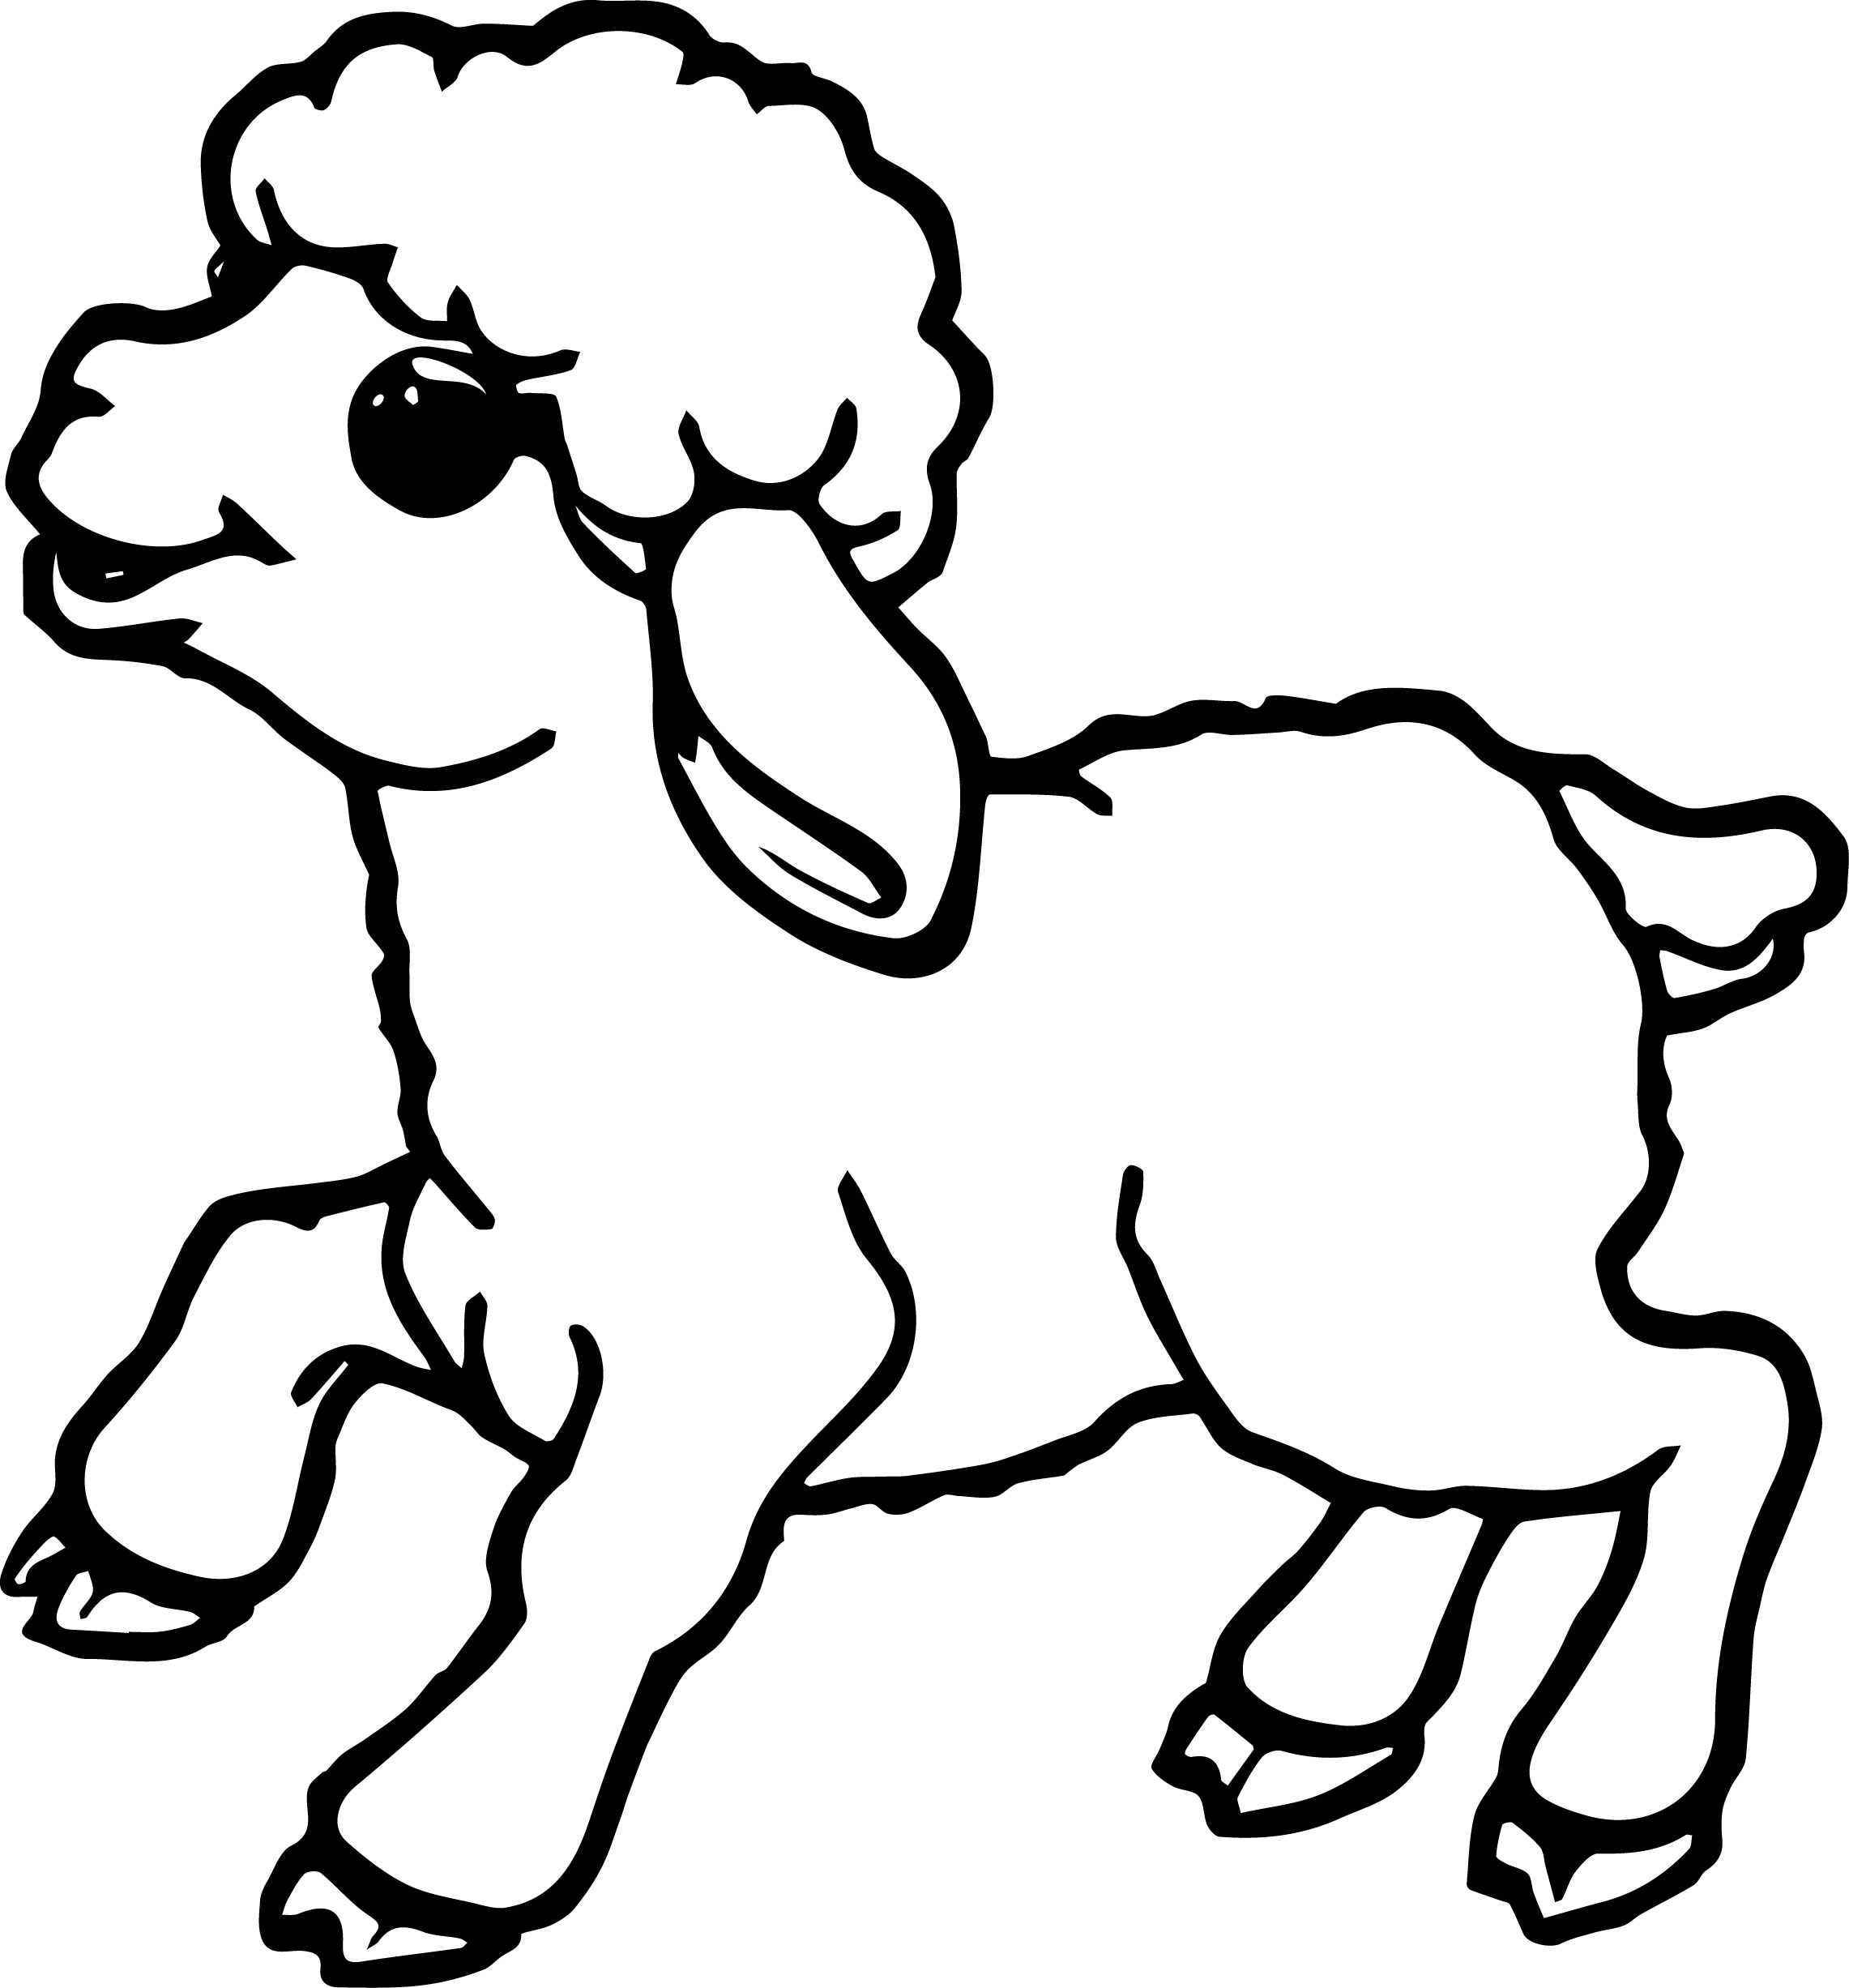 sheep coloring pages preschool sheep coloring pages for preschool preschool and preschool coloring sheep pages